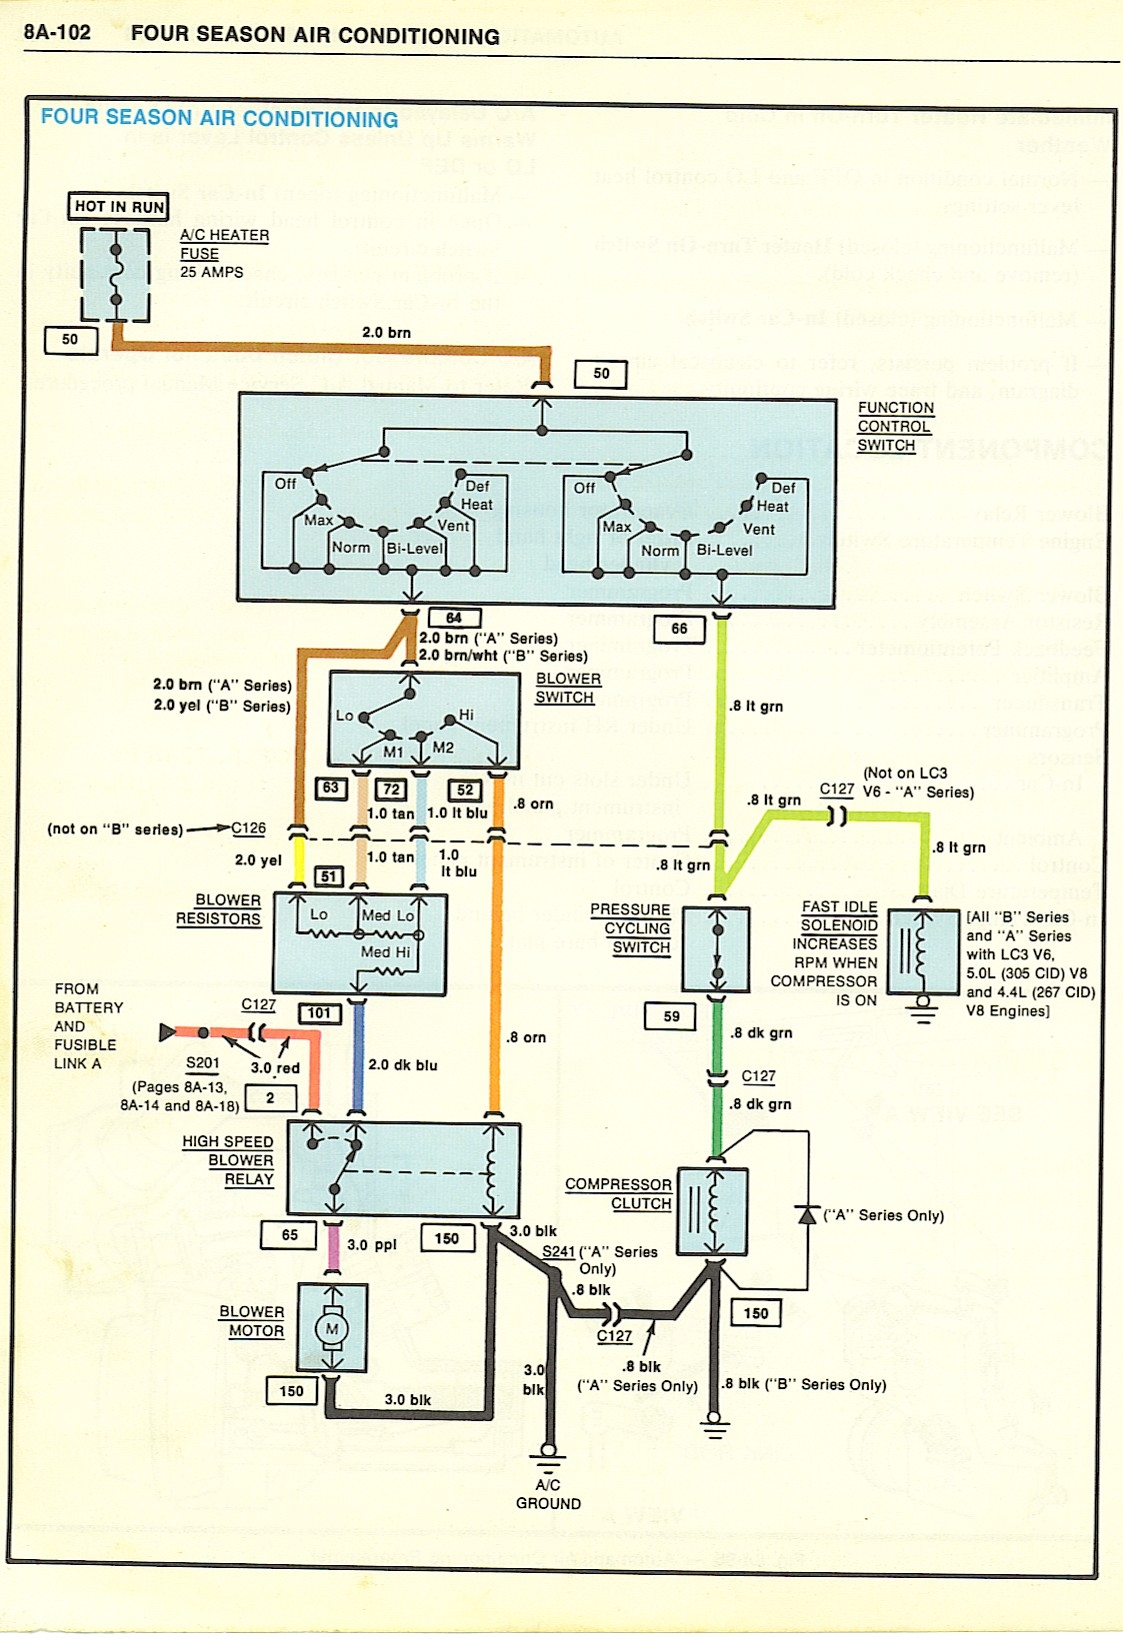 1968 Corvette Ac Wiring Diagram List Of Schematic Circuit Image 63 Vette Chevy Diagrams Rh Wizard Com